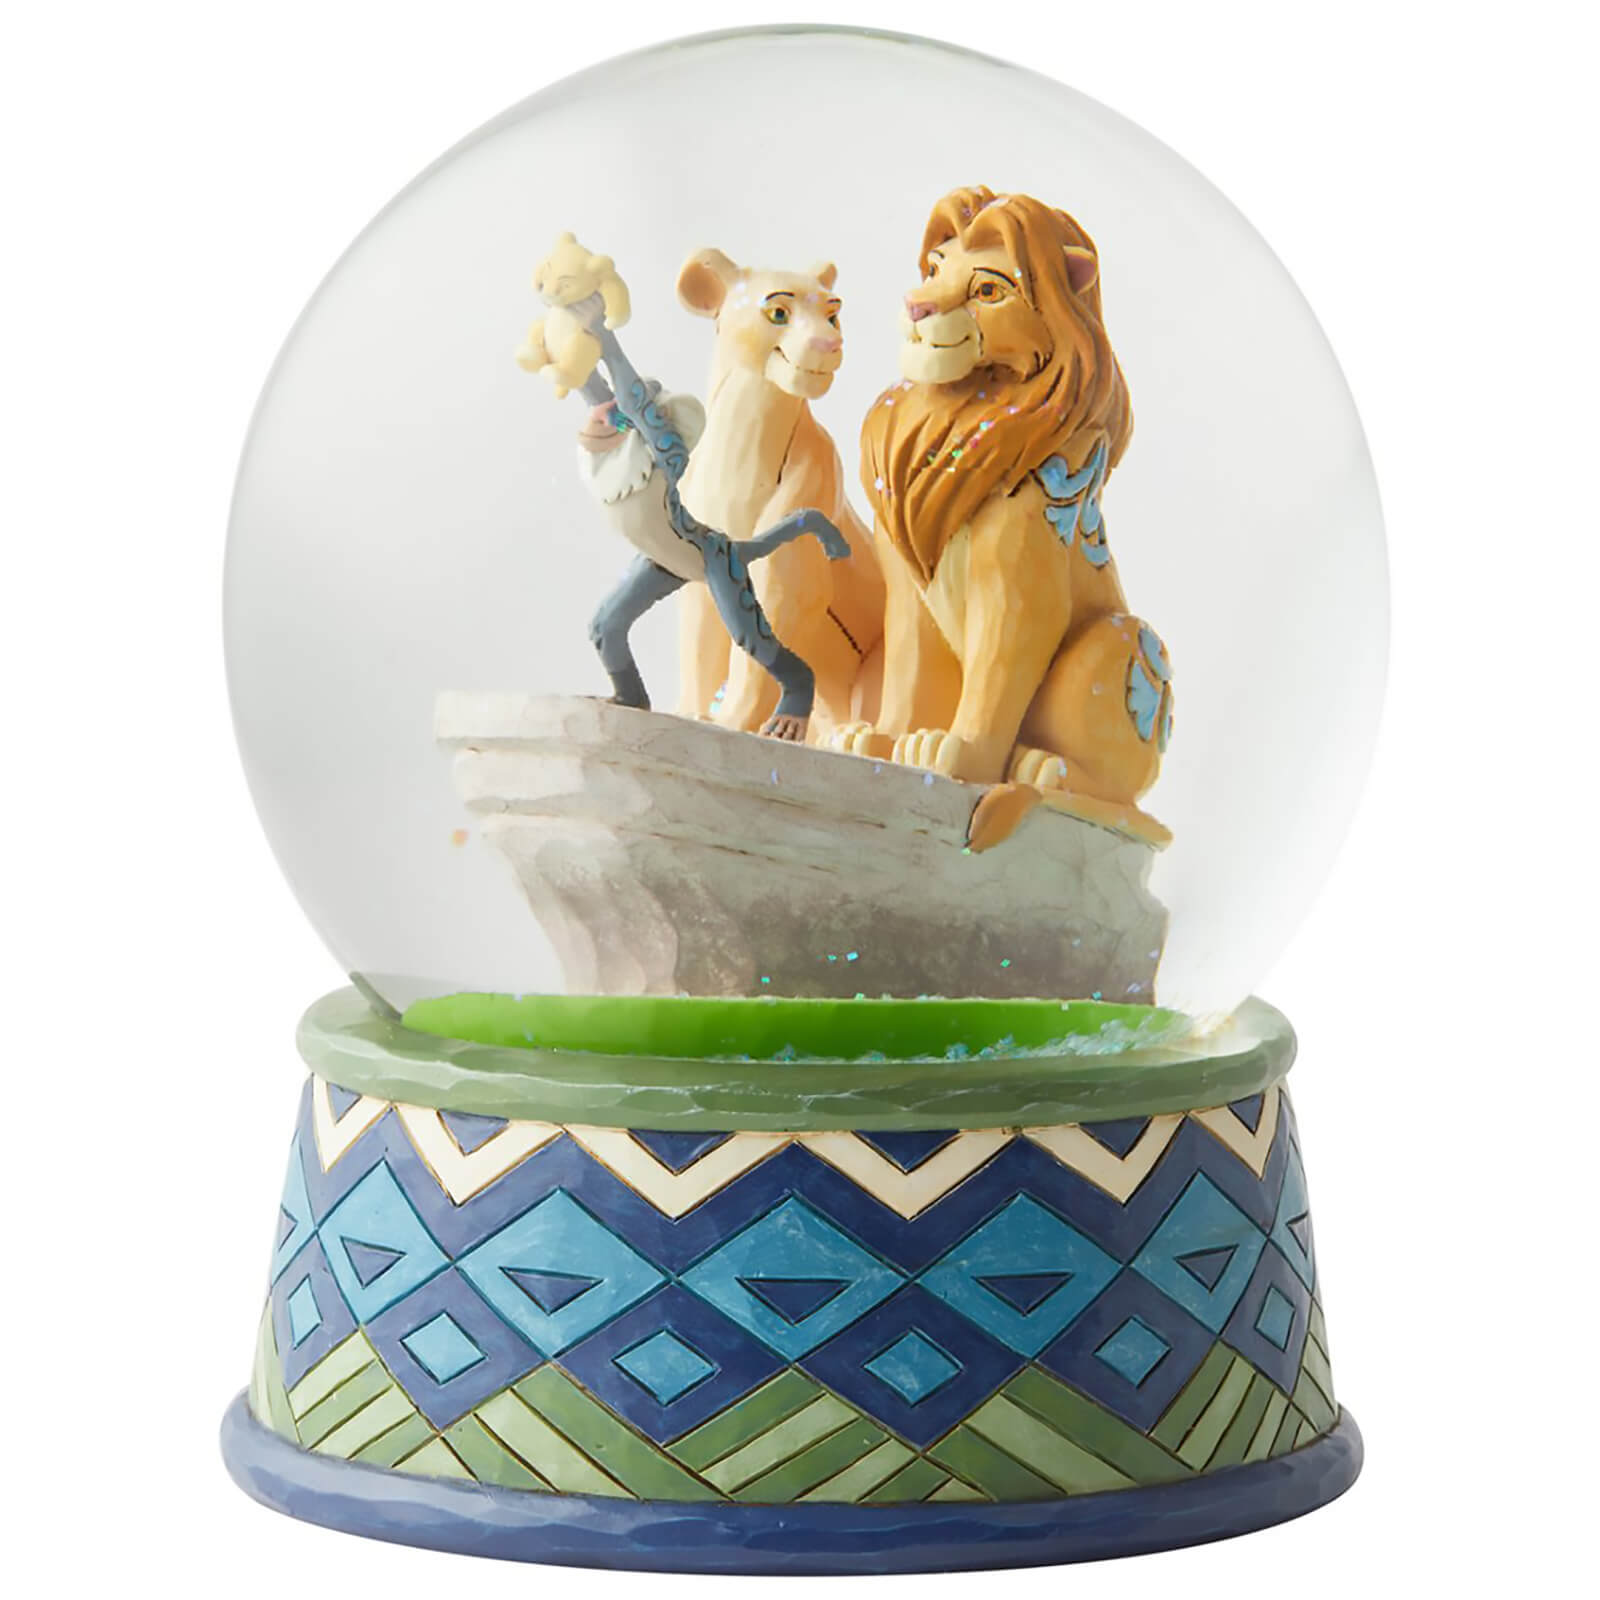 Image of Disney Traditions Lion King Waterball 14cm